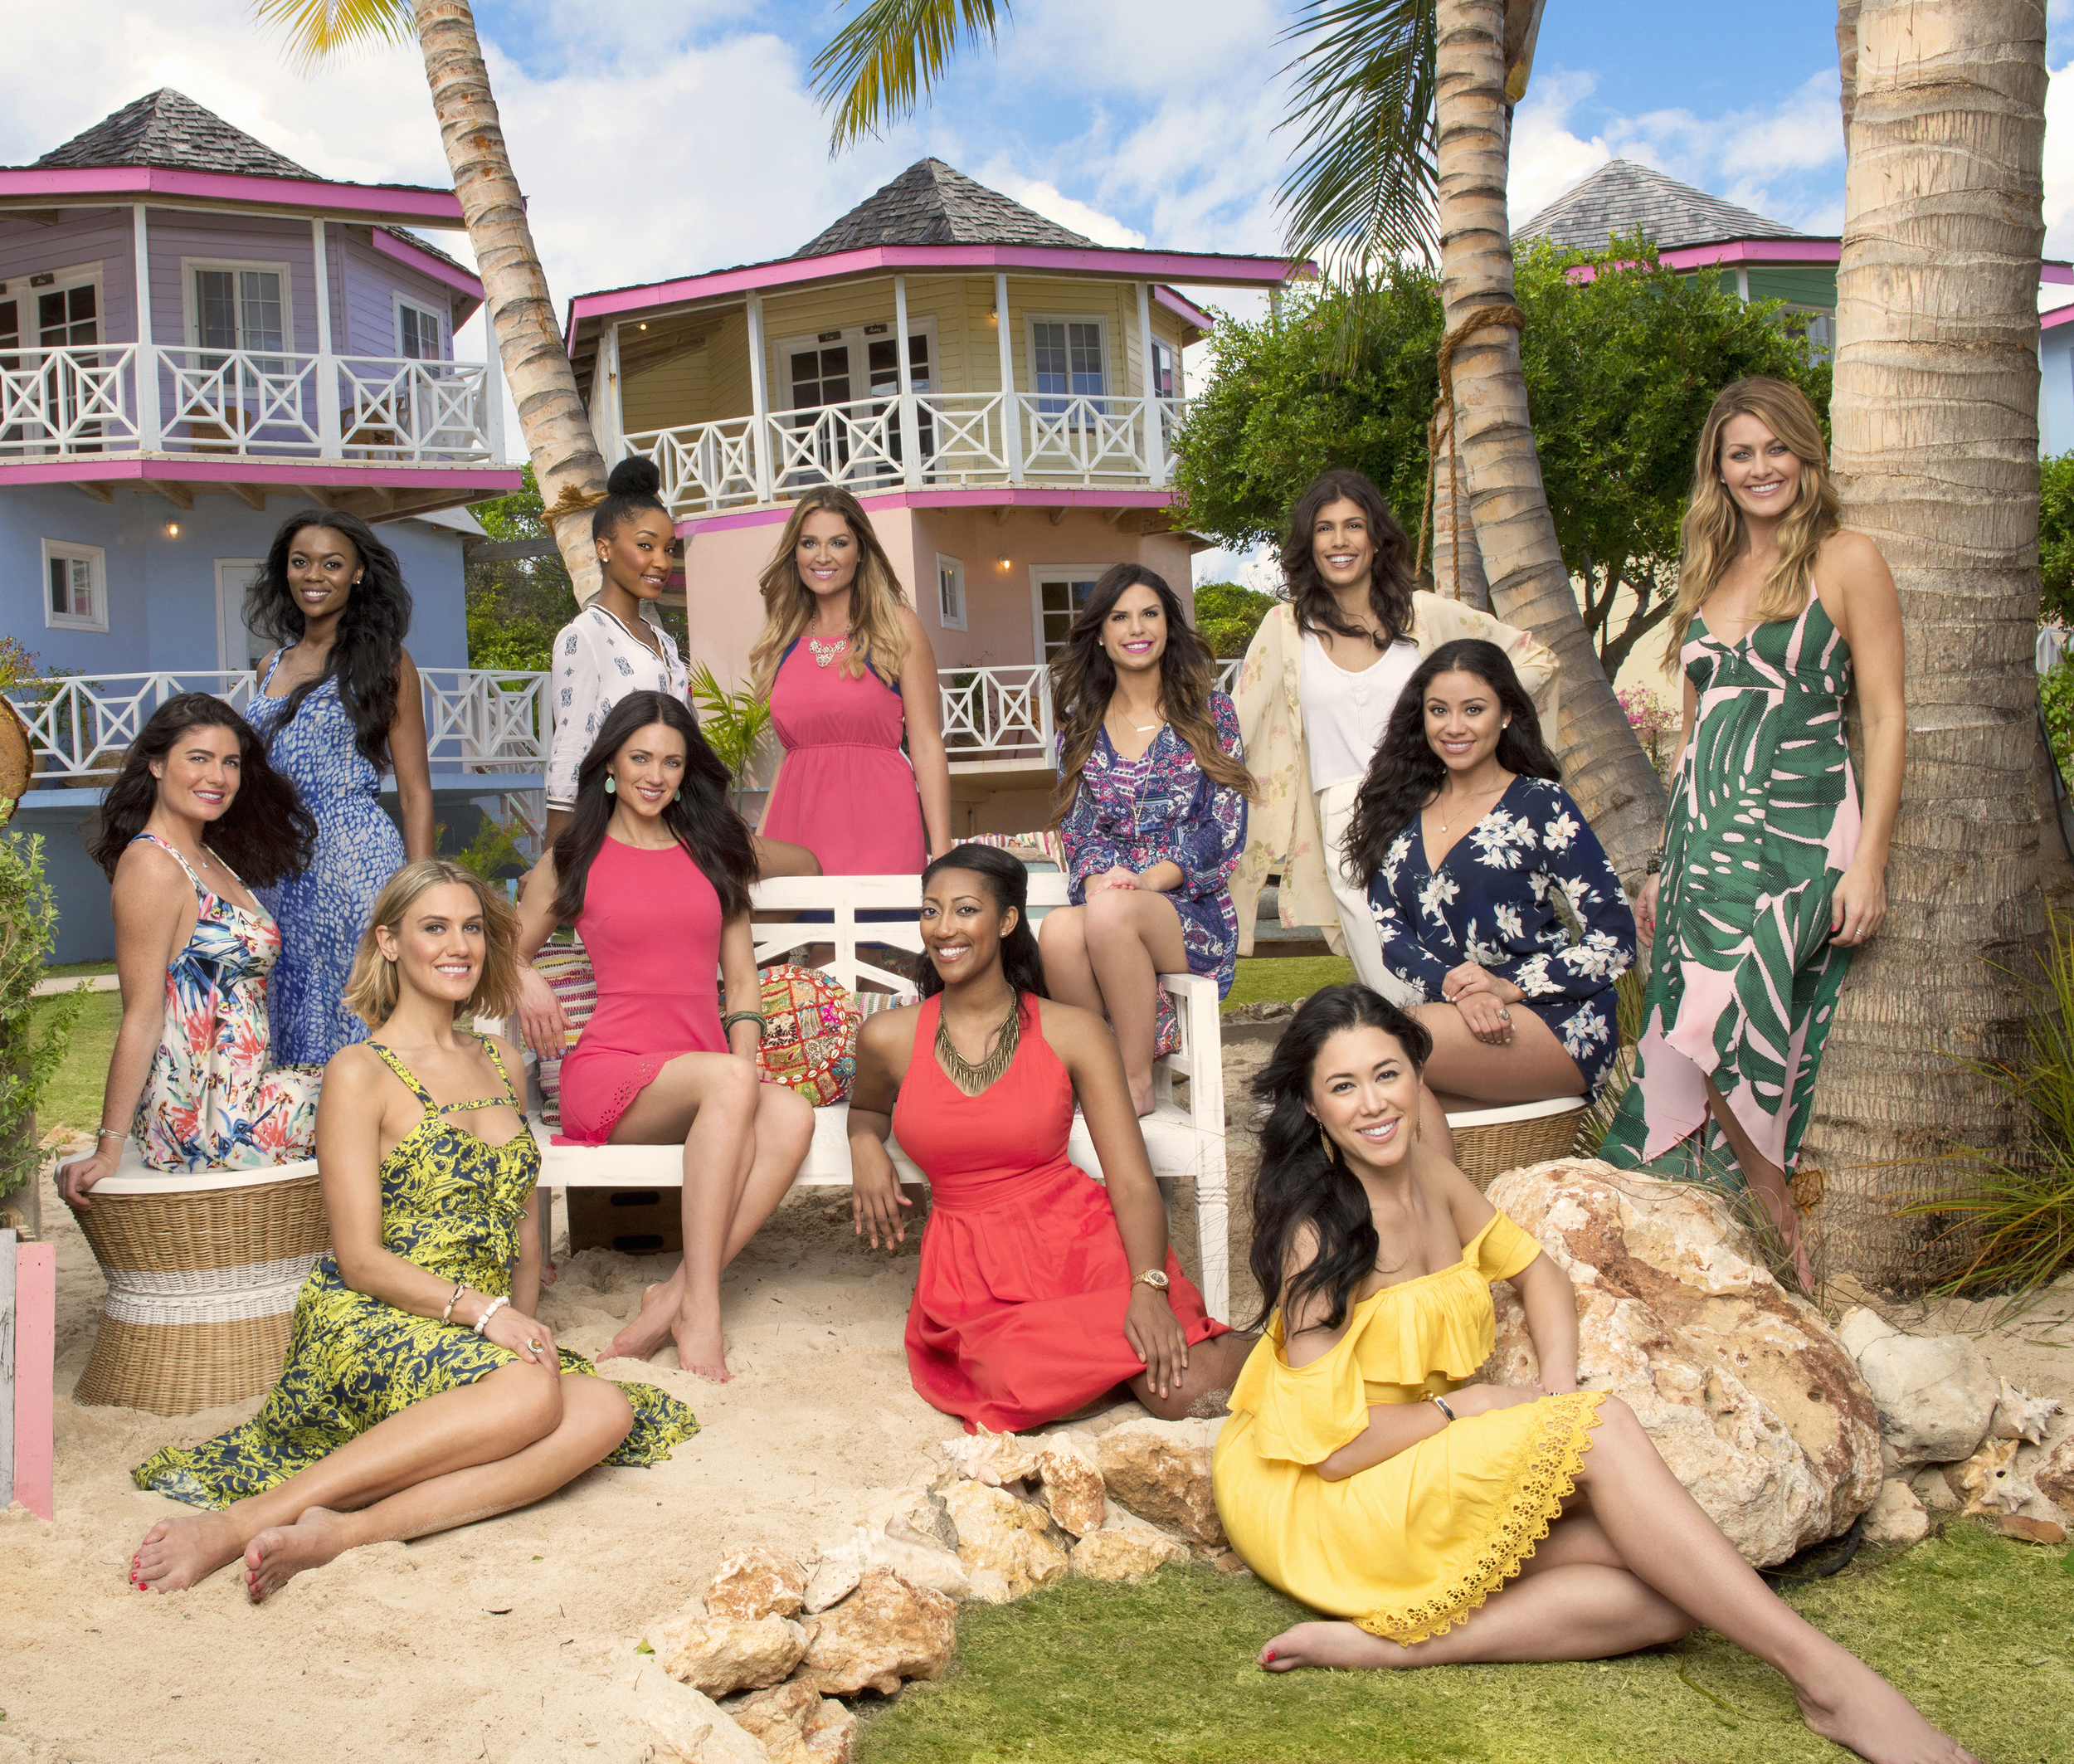 The beautiful women of Coupled in front of the villas in Anguilla.  Picture...PERFECT.